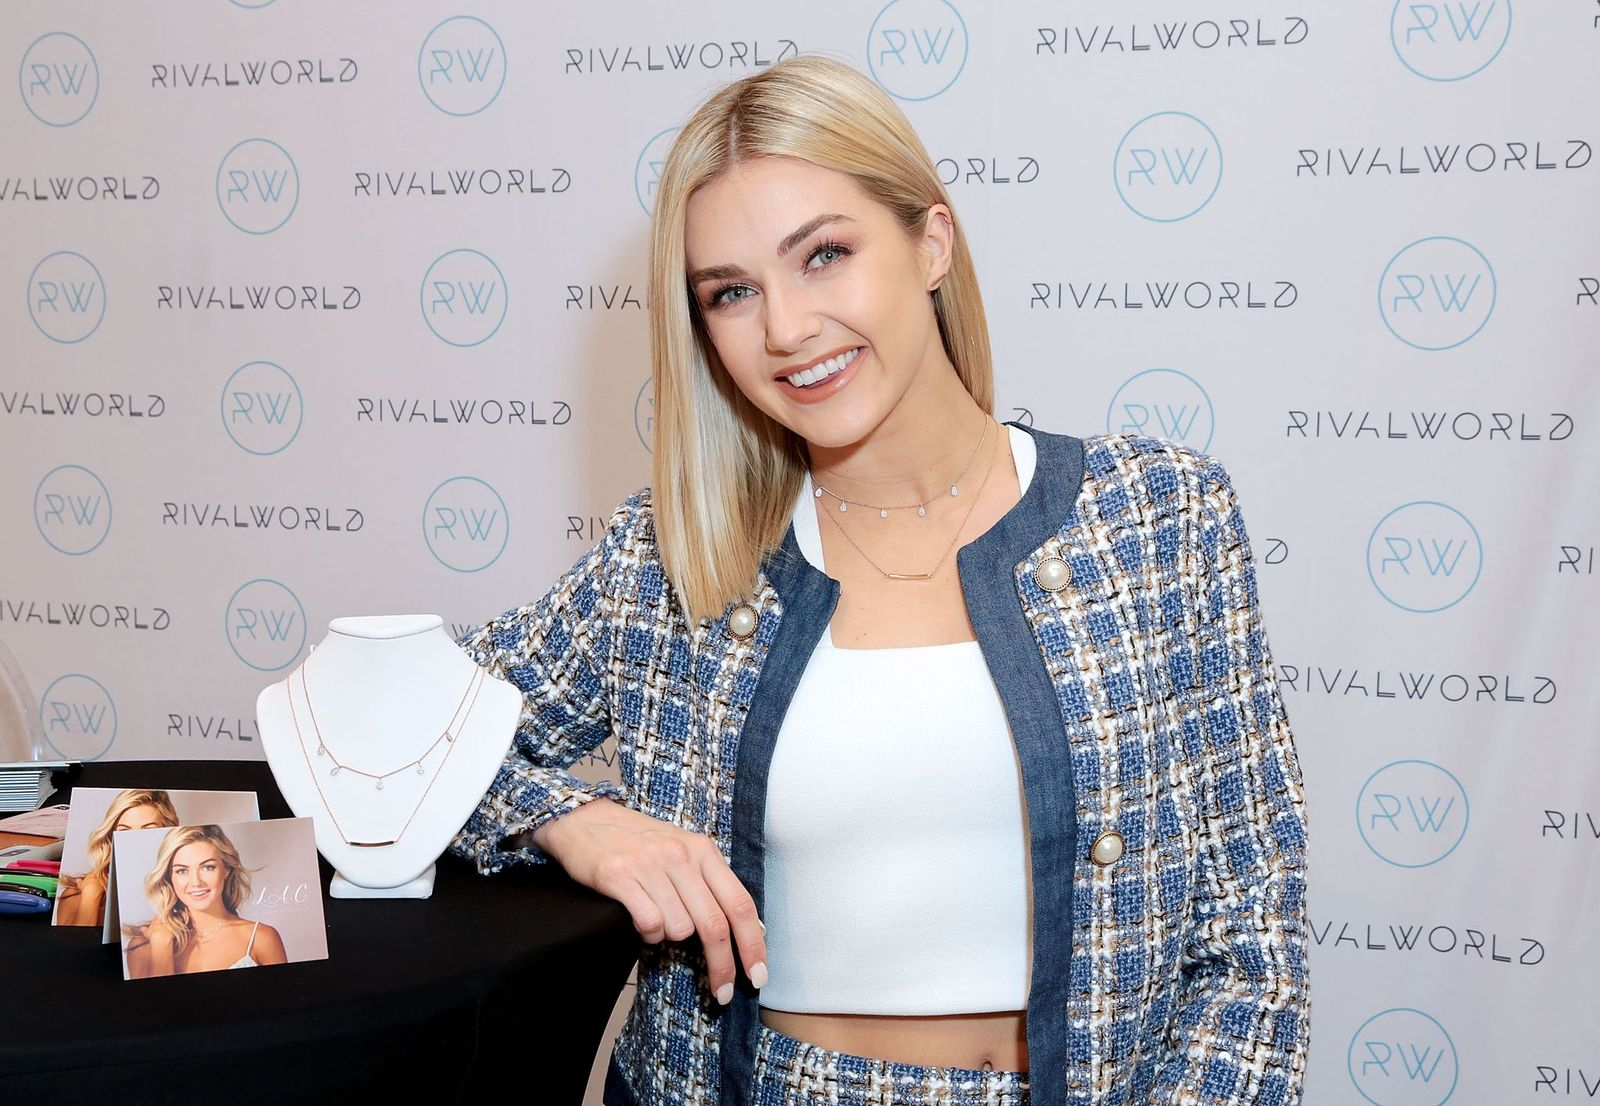 Lindsay Arnold posed with L.A.C. by Lindsay Arnold jewerly at the launch of the RivalWorld Market on February 5, 2019 in Century City, California   Photo: Getty Images